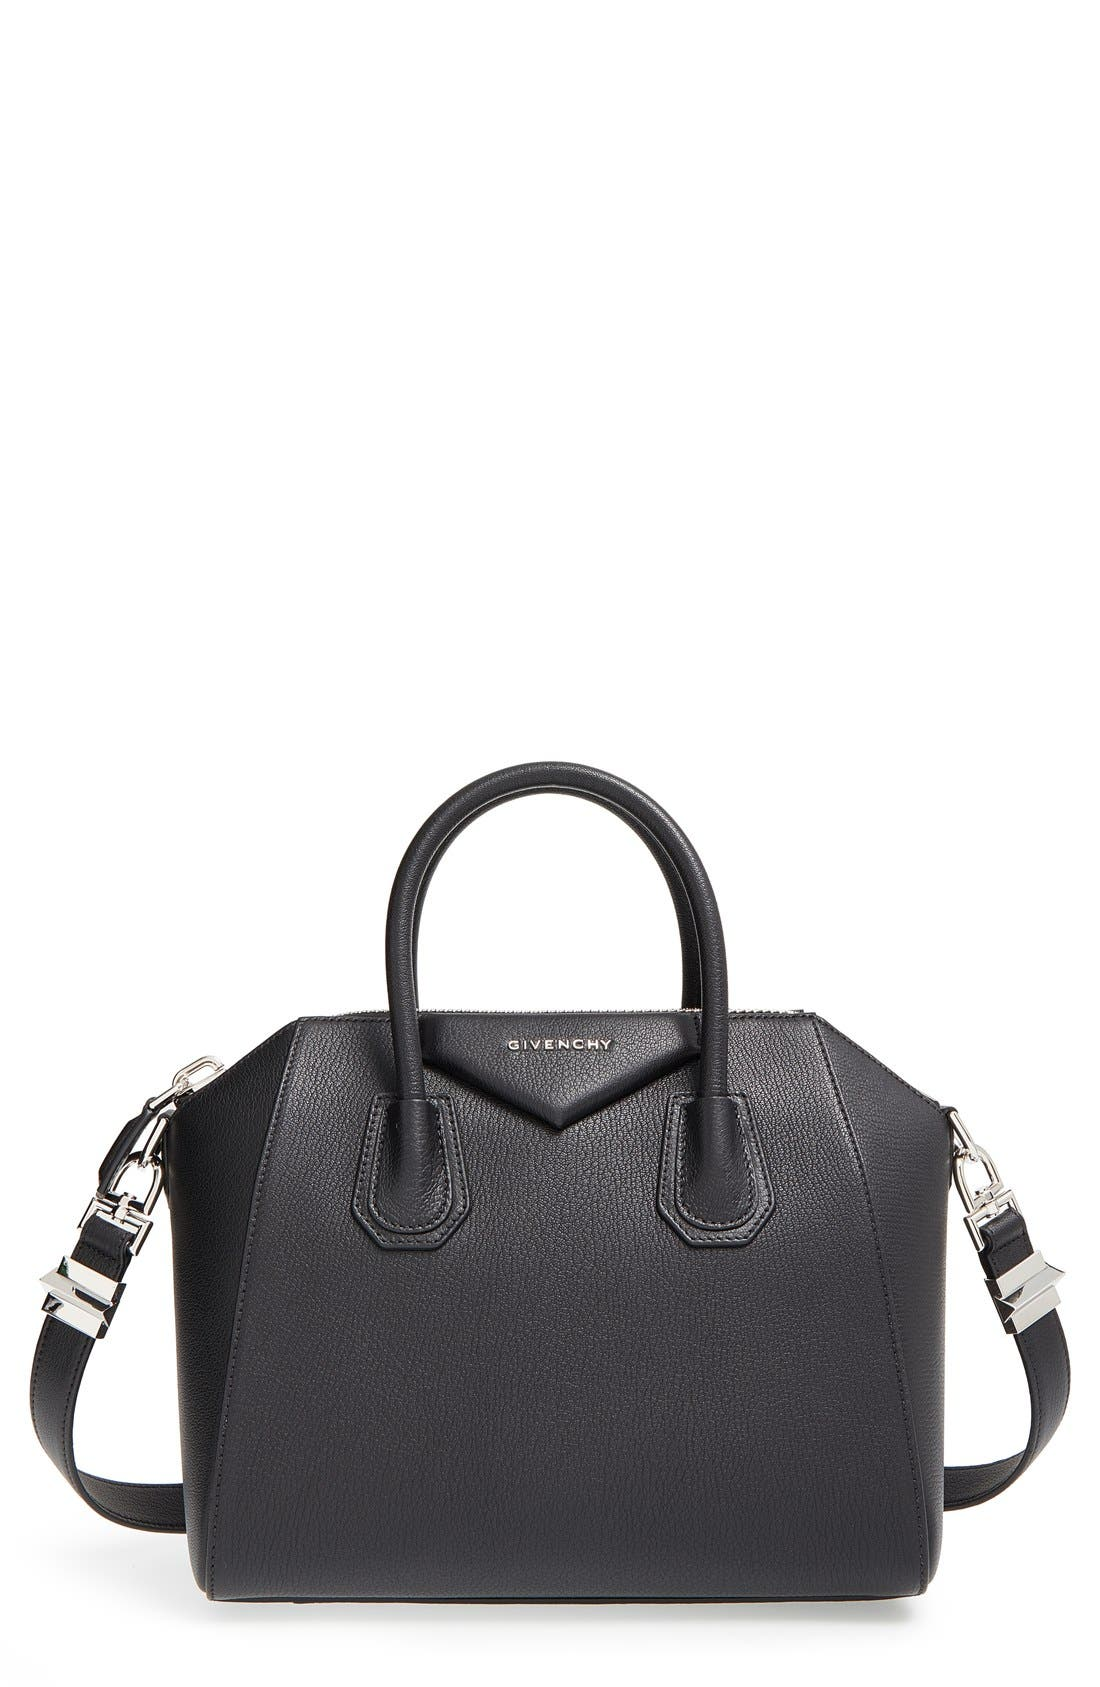 Main Image - Givenchy 'Small Antigona' Sugar Leather Satchel